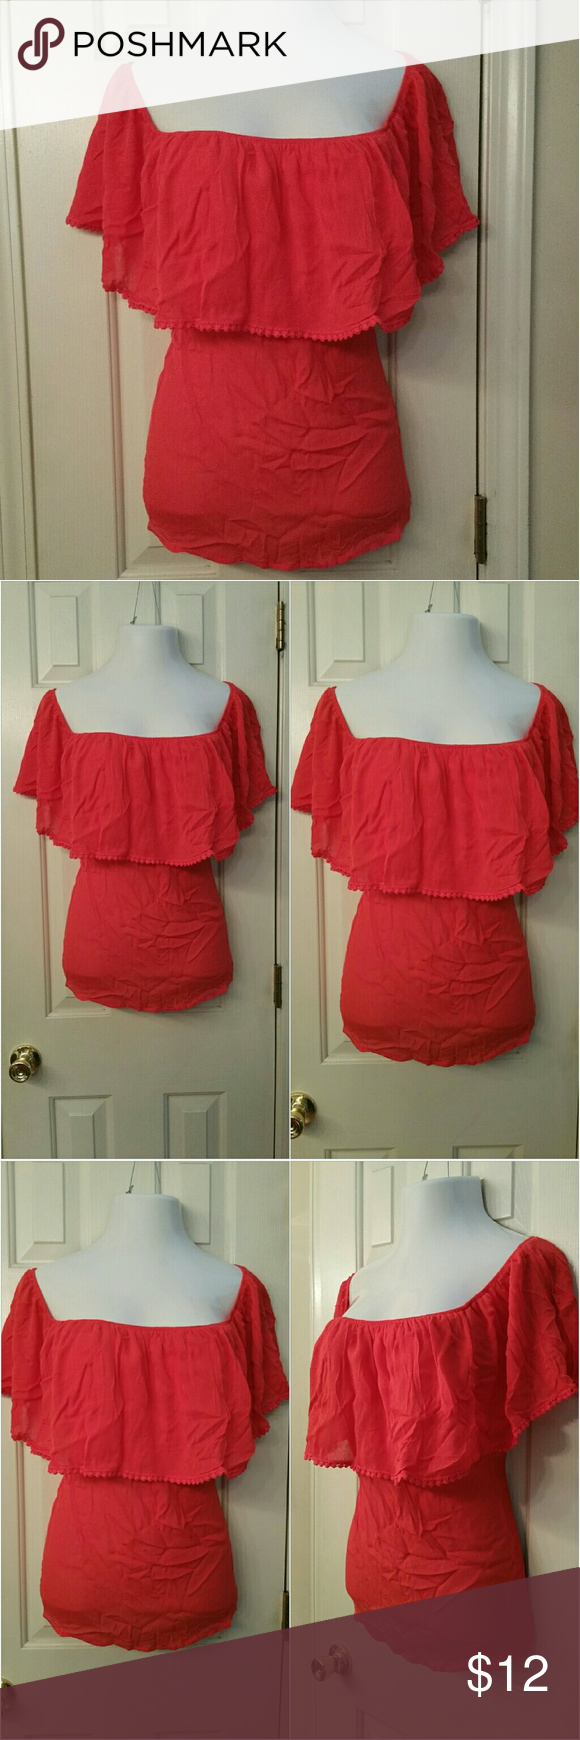 rue 21 plus size top